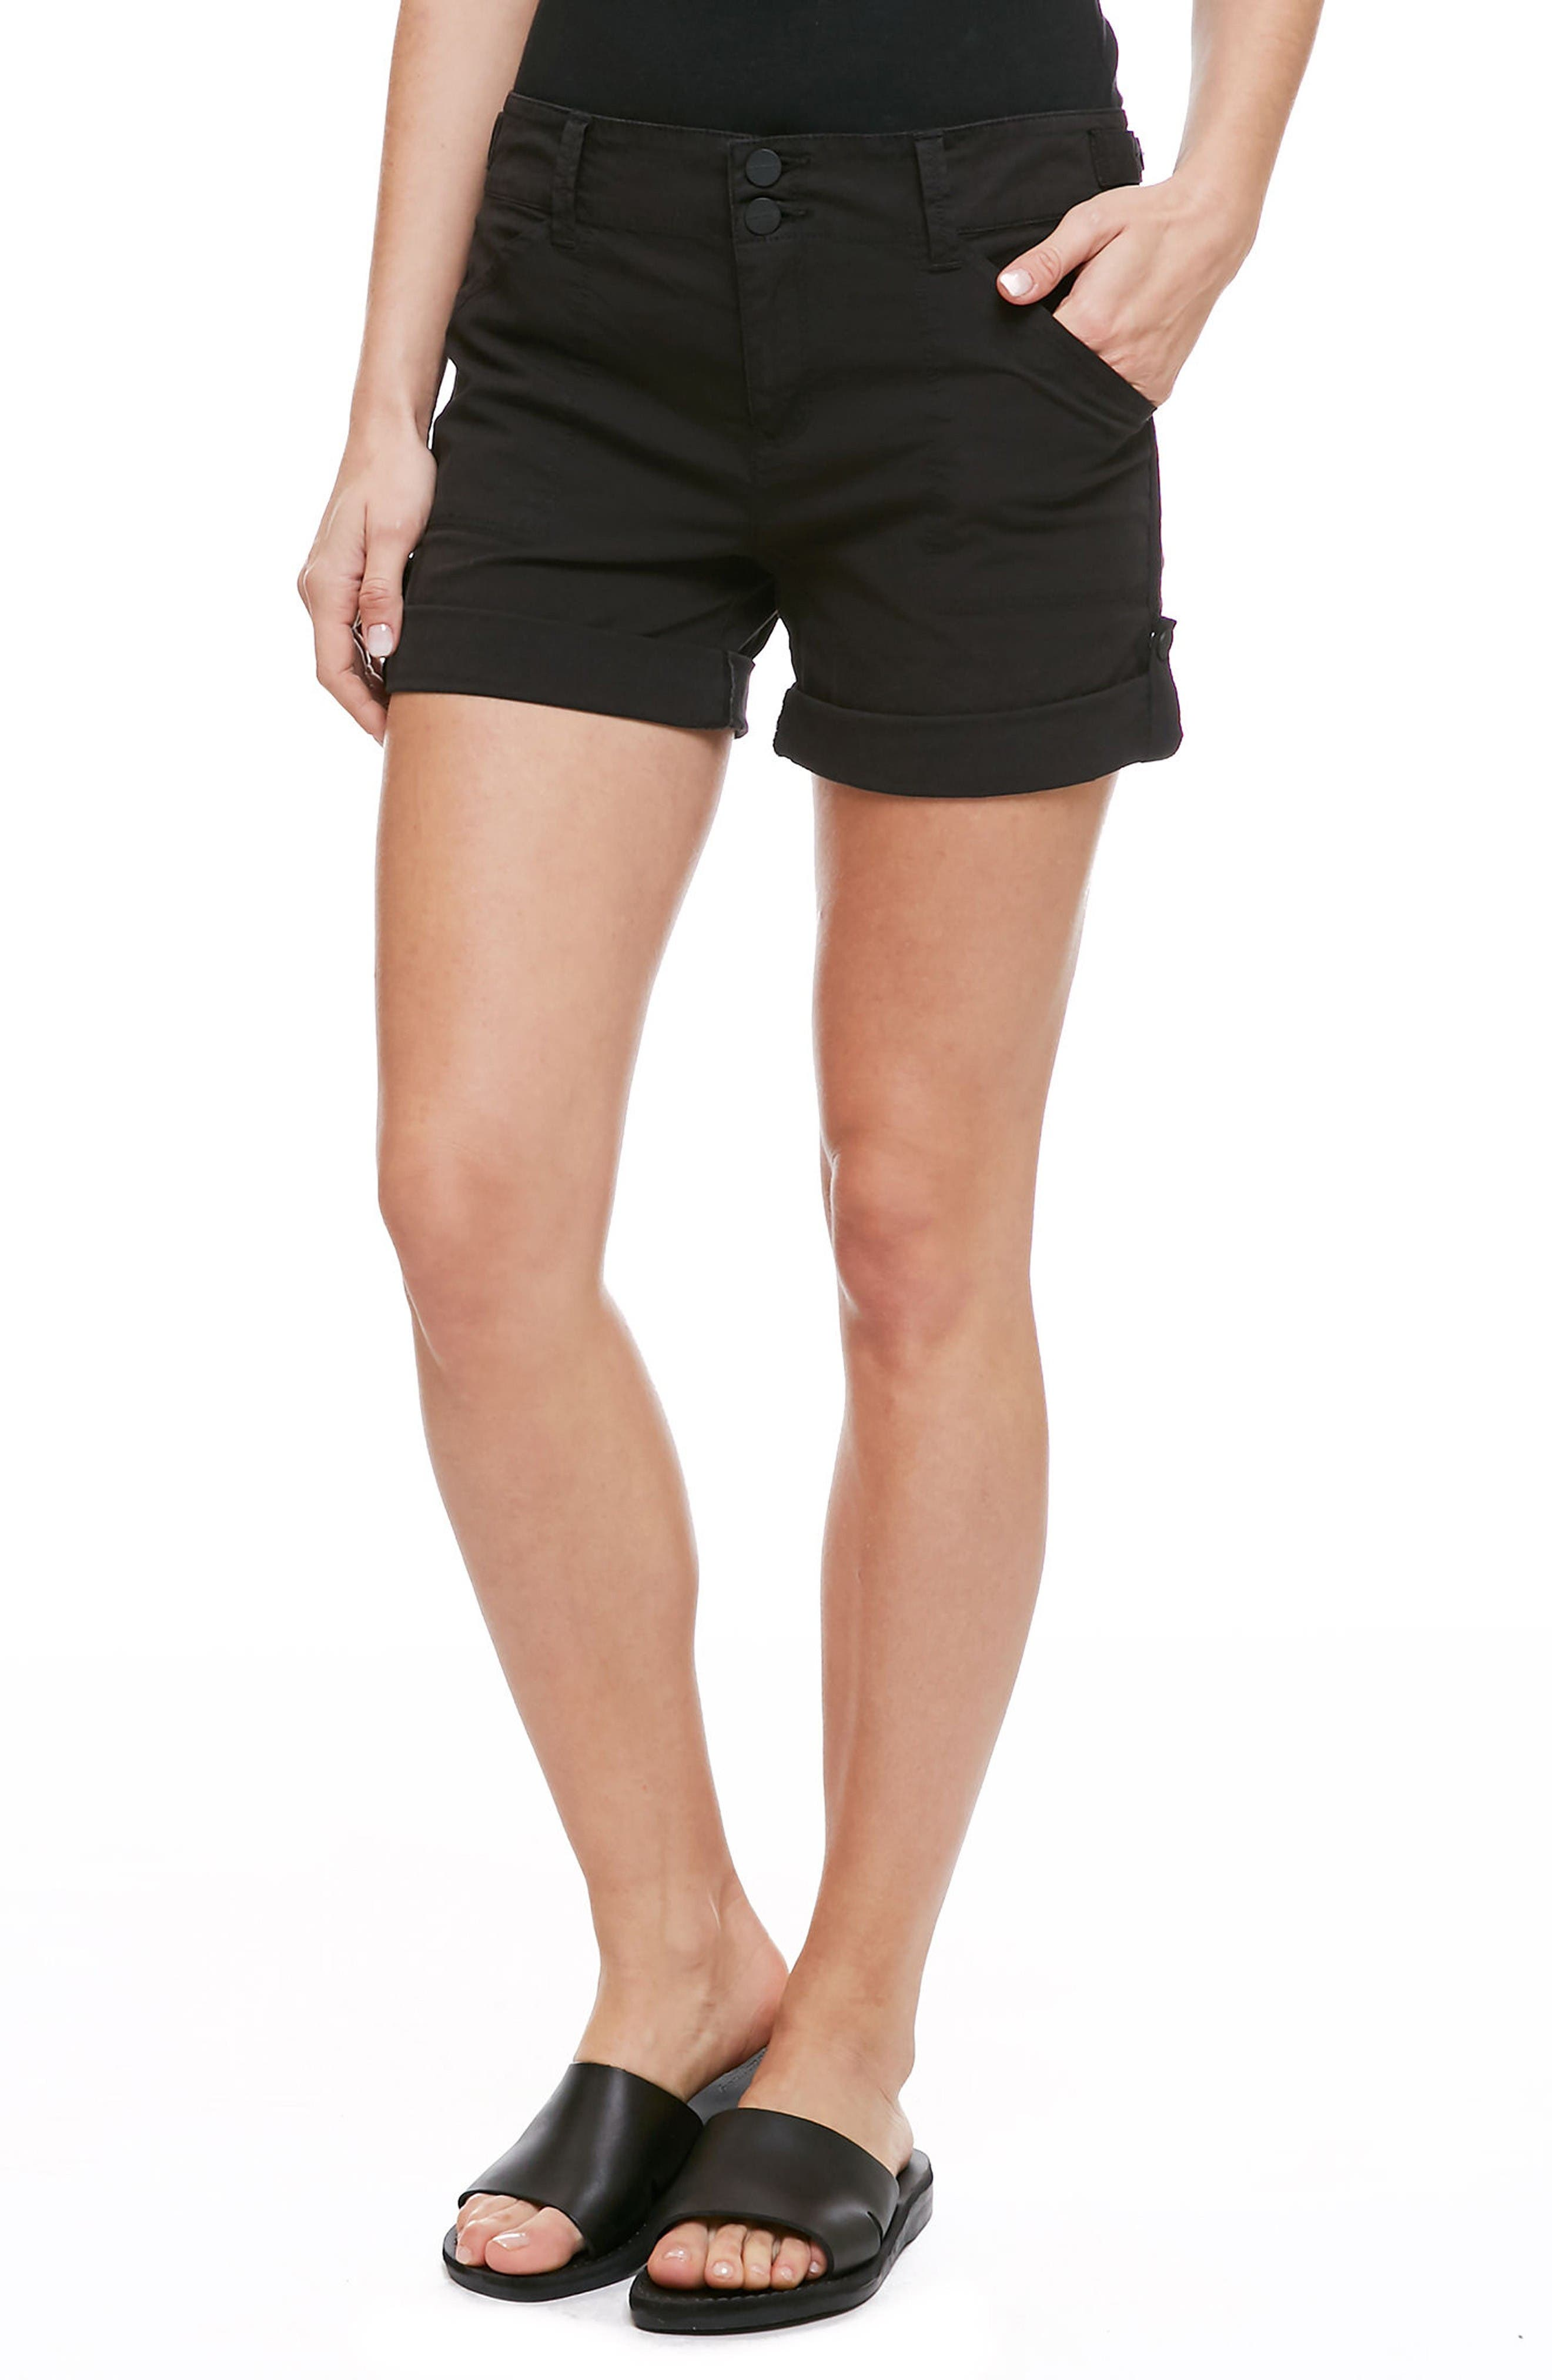 Habitat Shorts,                         Main,                         color, Black